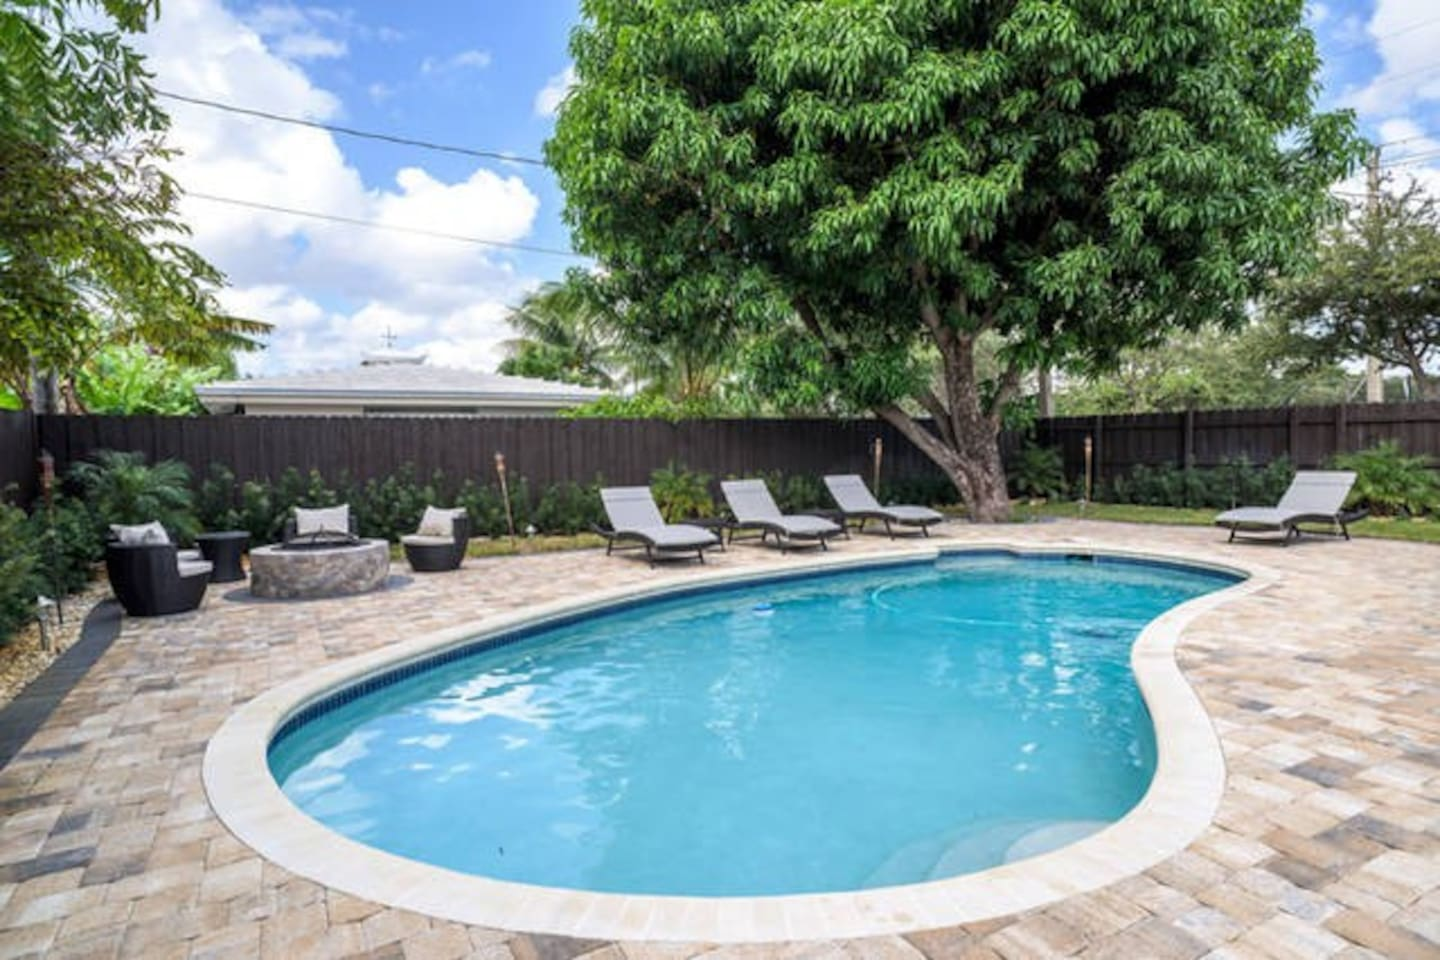 Enjoy full access to pool area.